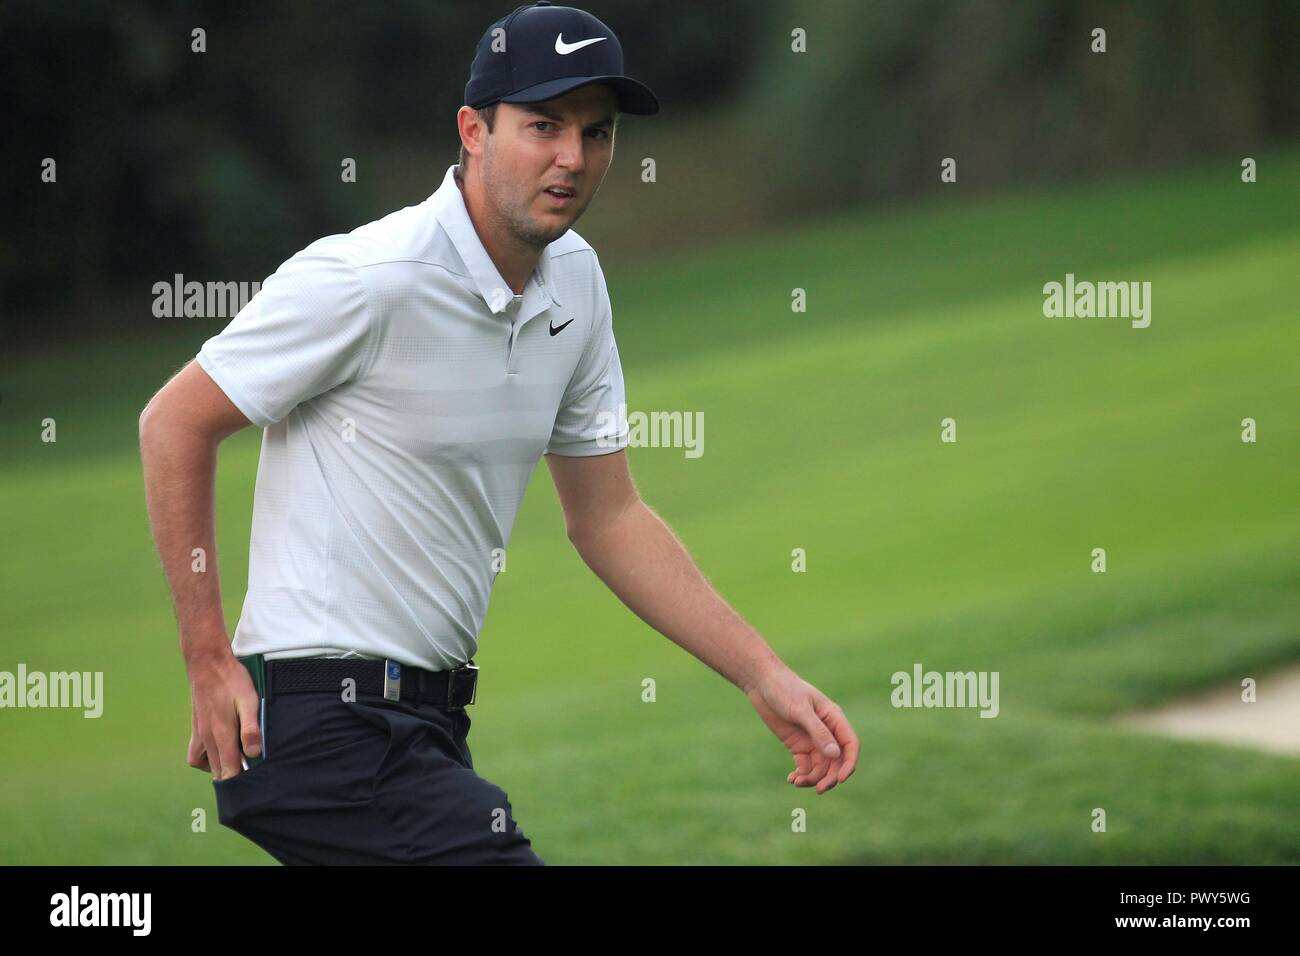 British Ashley Chesters in action during the first round of the Golf 2018 Andalusia Valderrama Master, at the Royal Club Valderrama, in San Roque, Andalusia, Spain, 18 October 2018. EFE/A.Carrasco Ragel - Stock Image